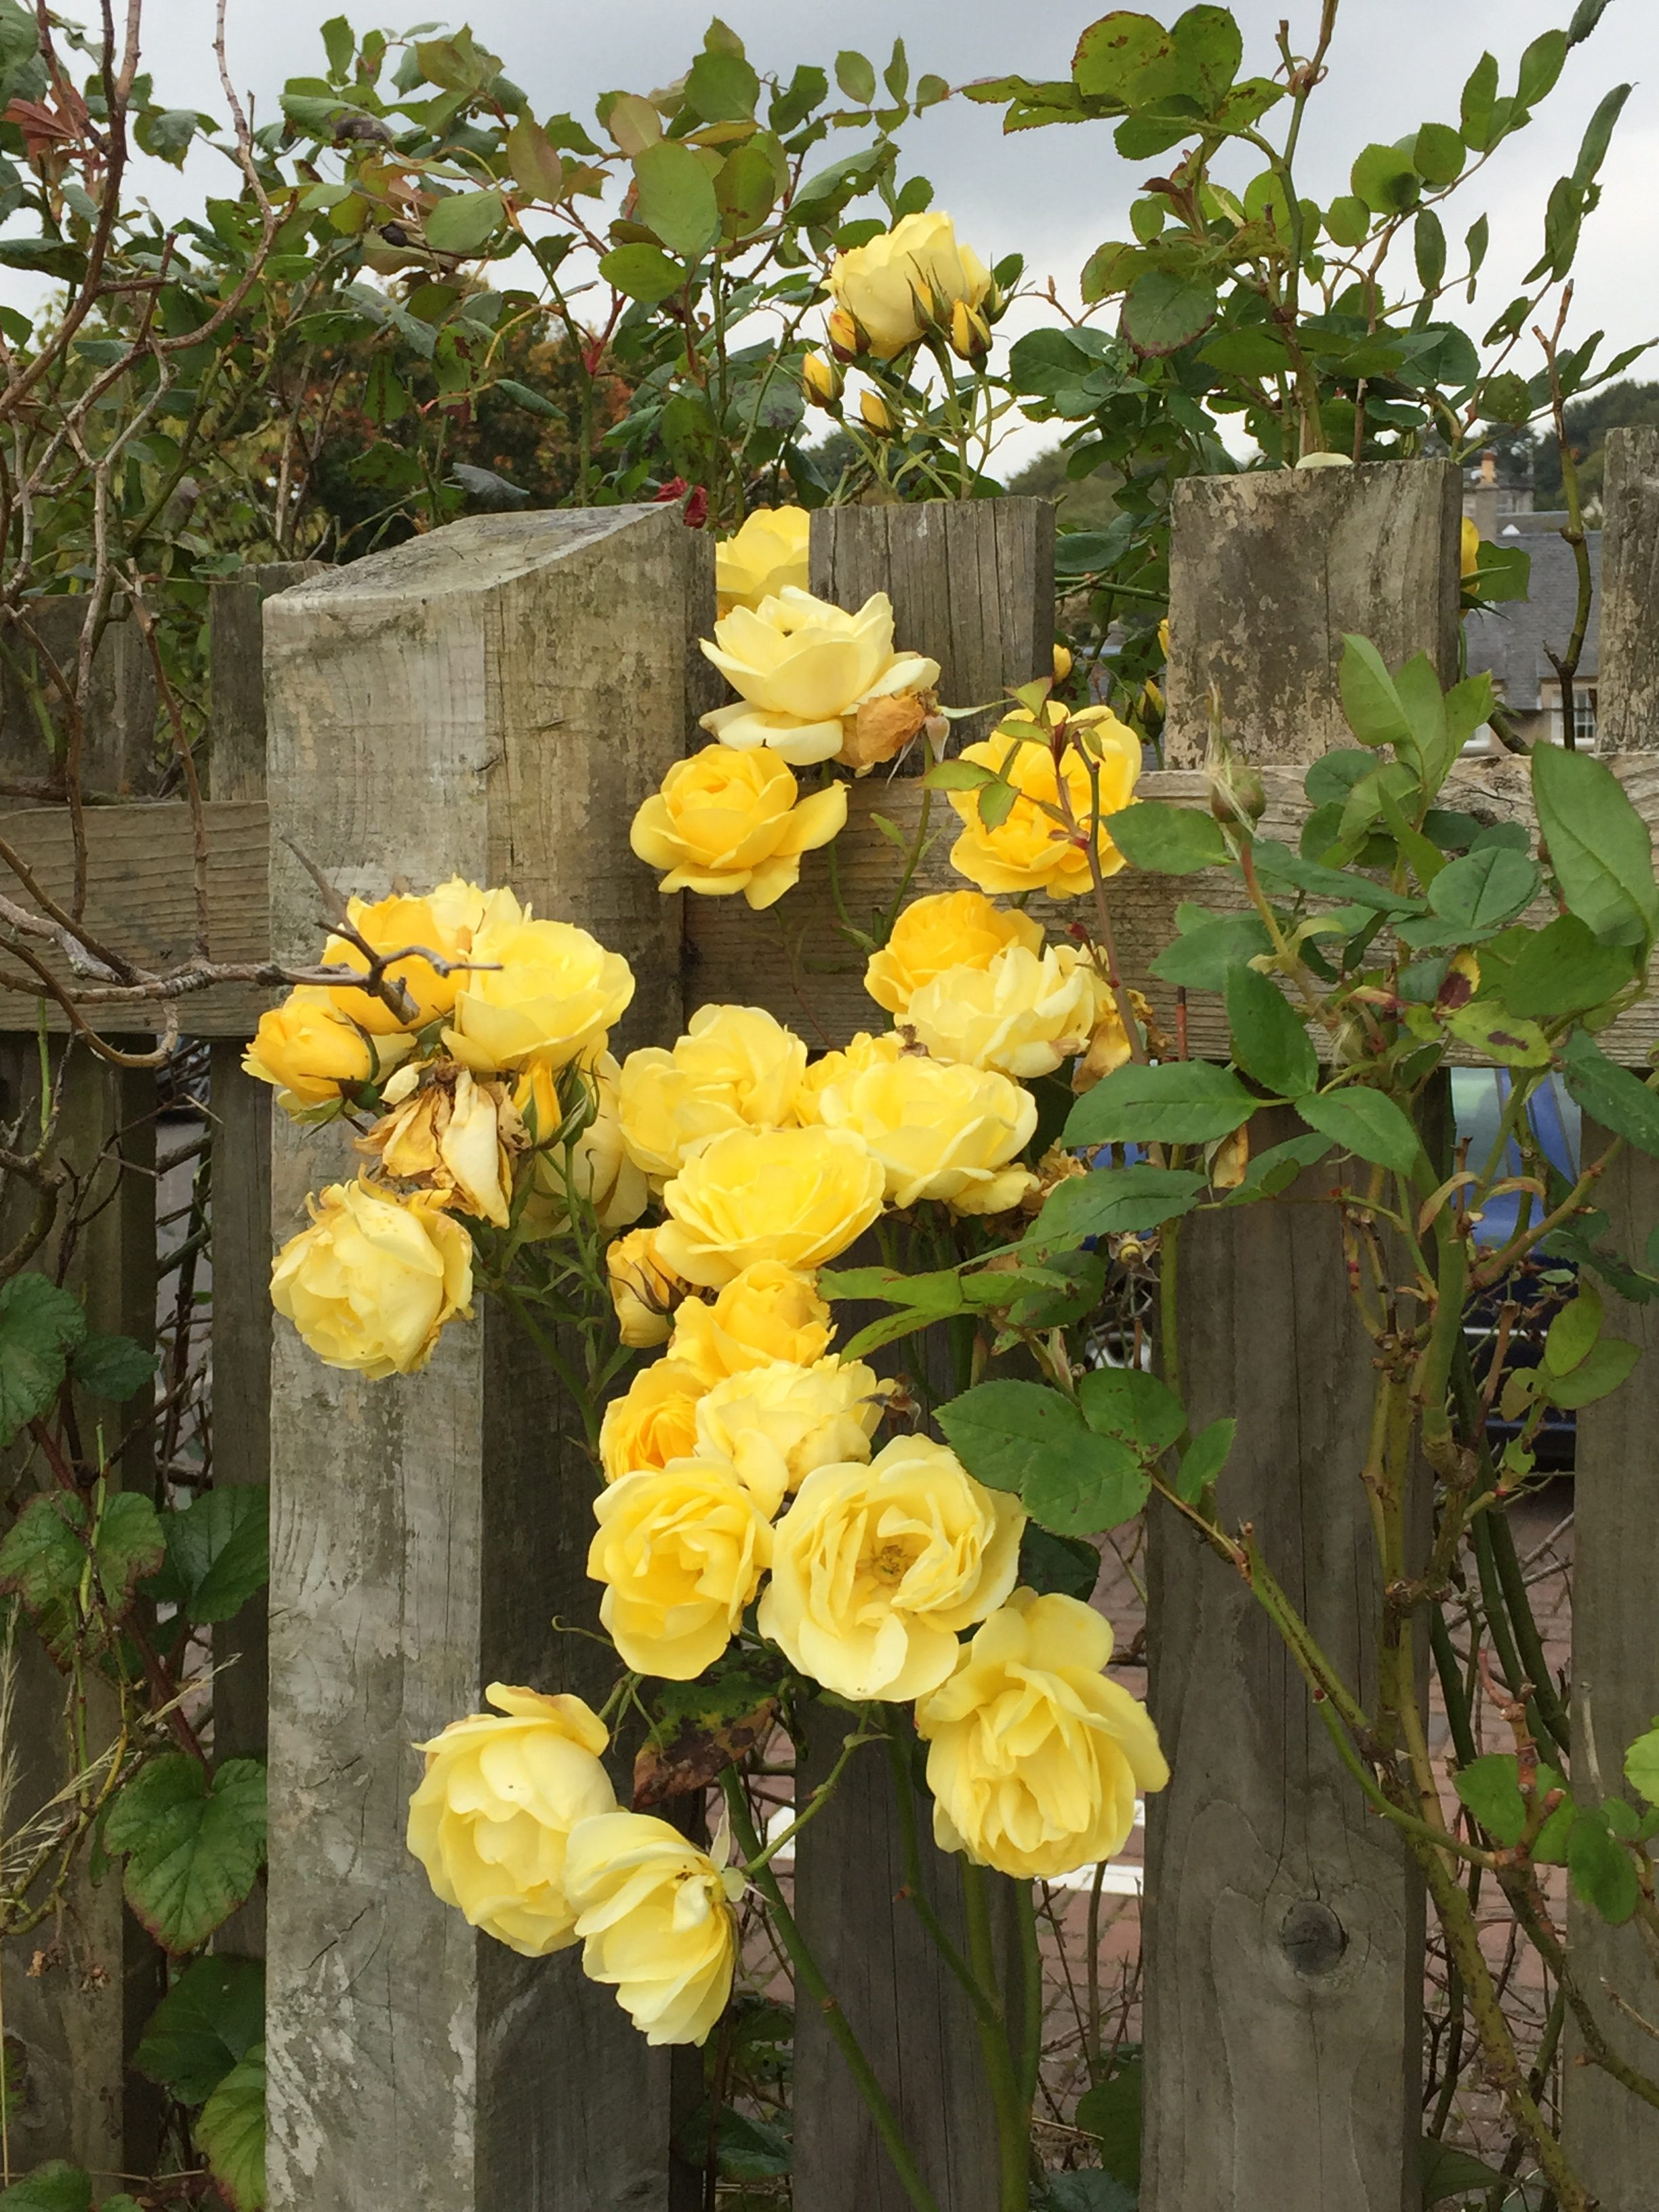 Yellow rose blossoms along a fence